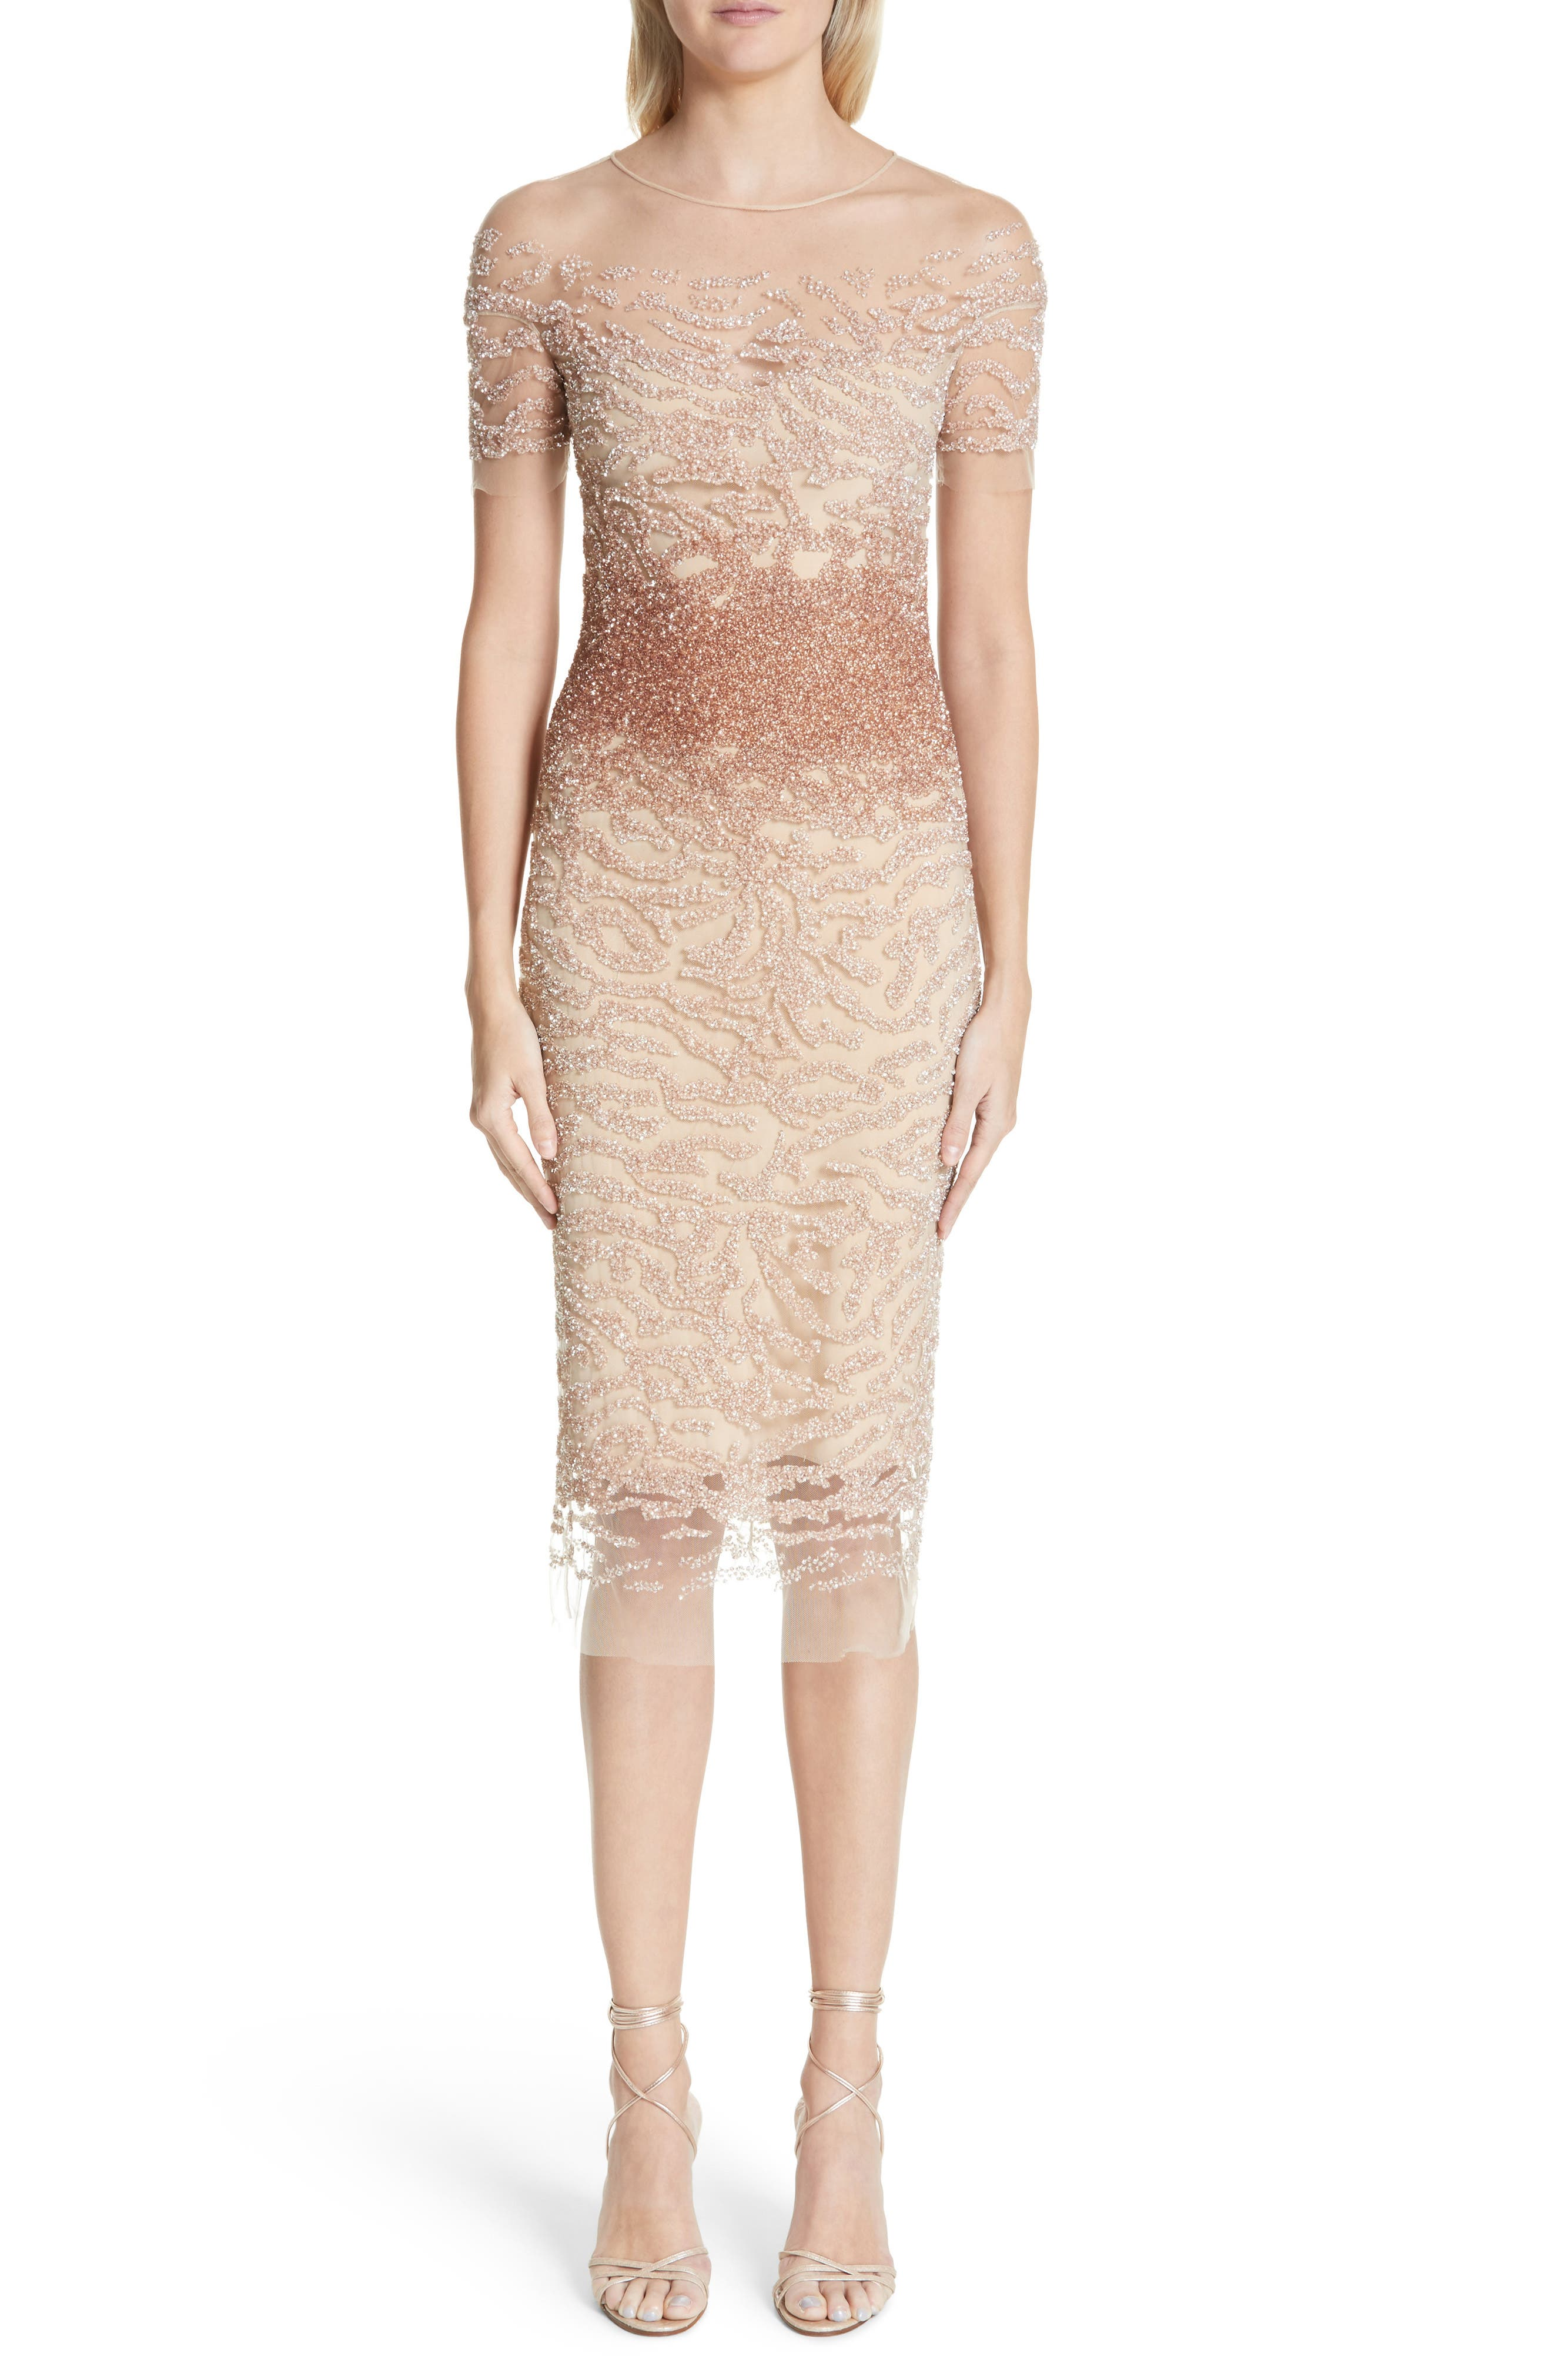 PAMELLA ROLAND BEADED ILLUSION DRESS